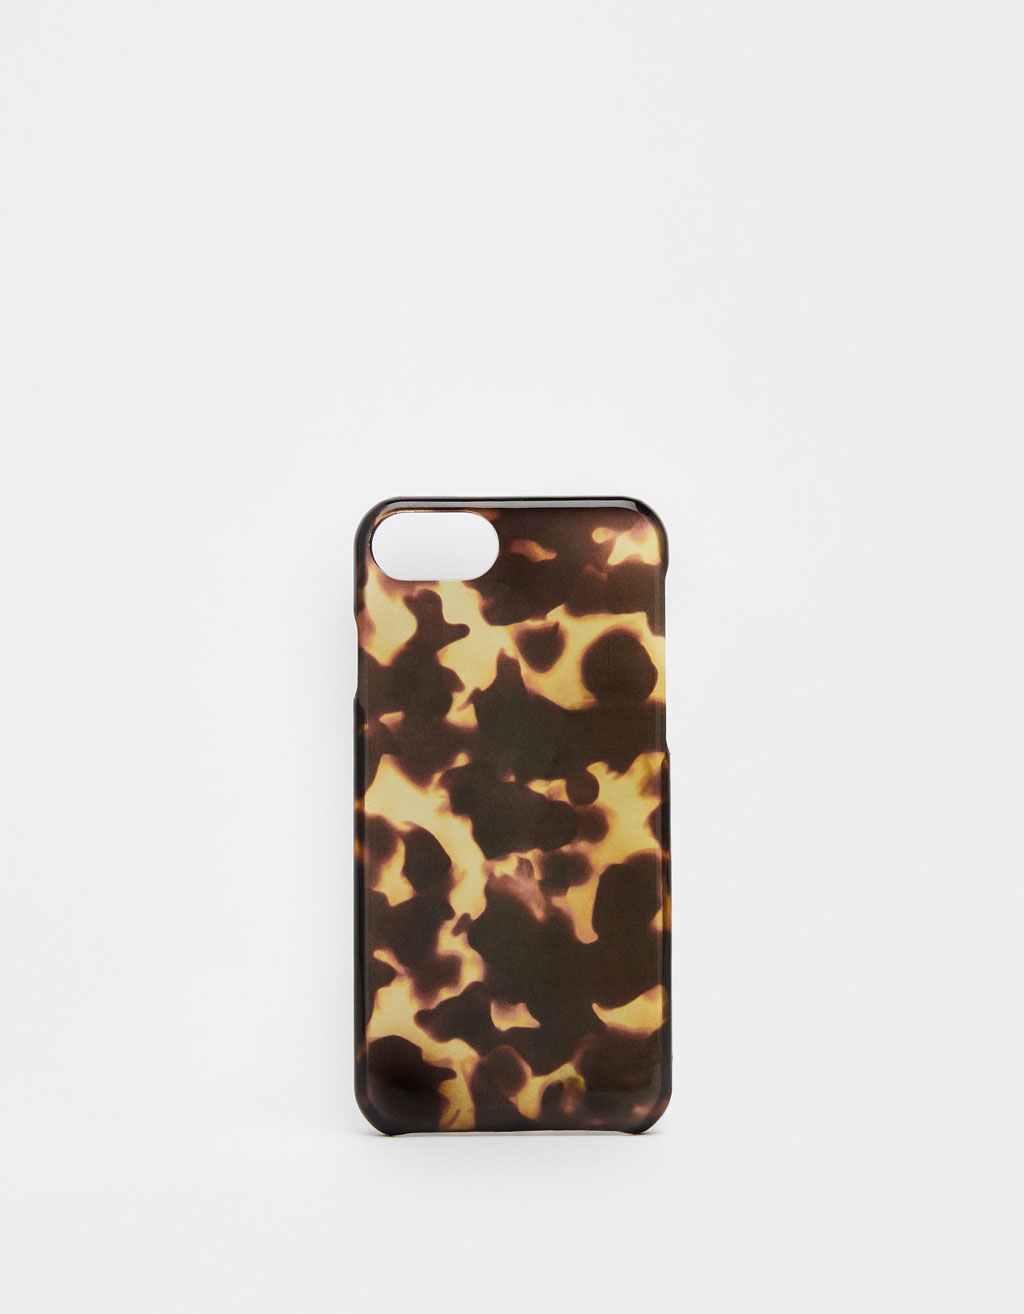 Carcasa carcasa efecto carei iPhone 6/6S/7/8